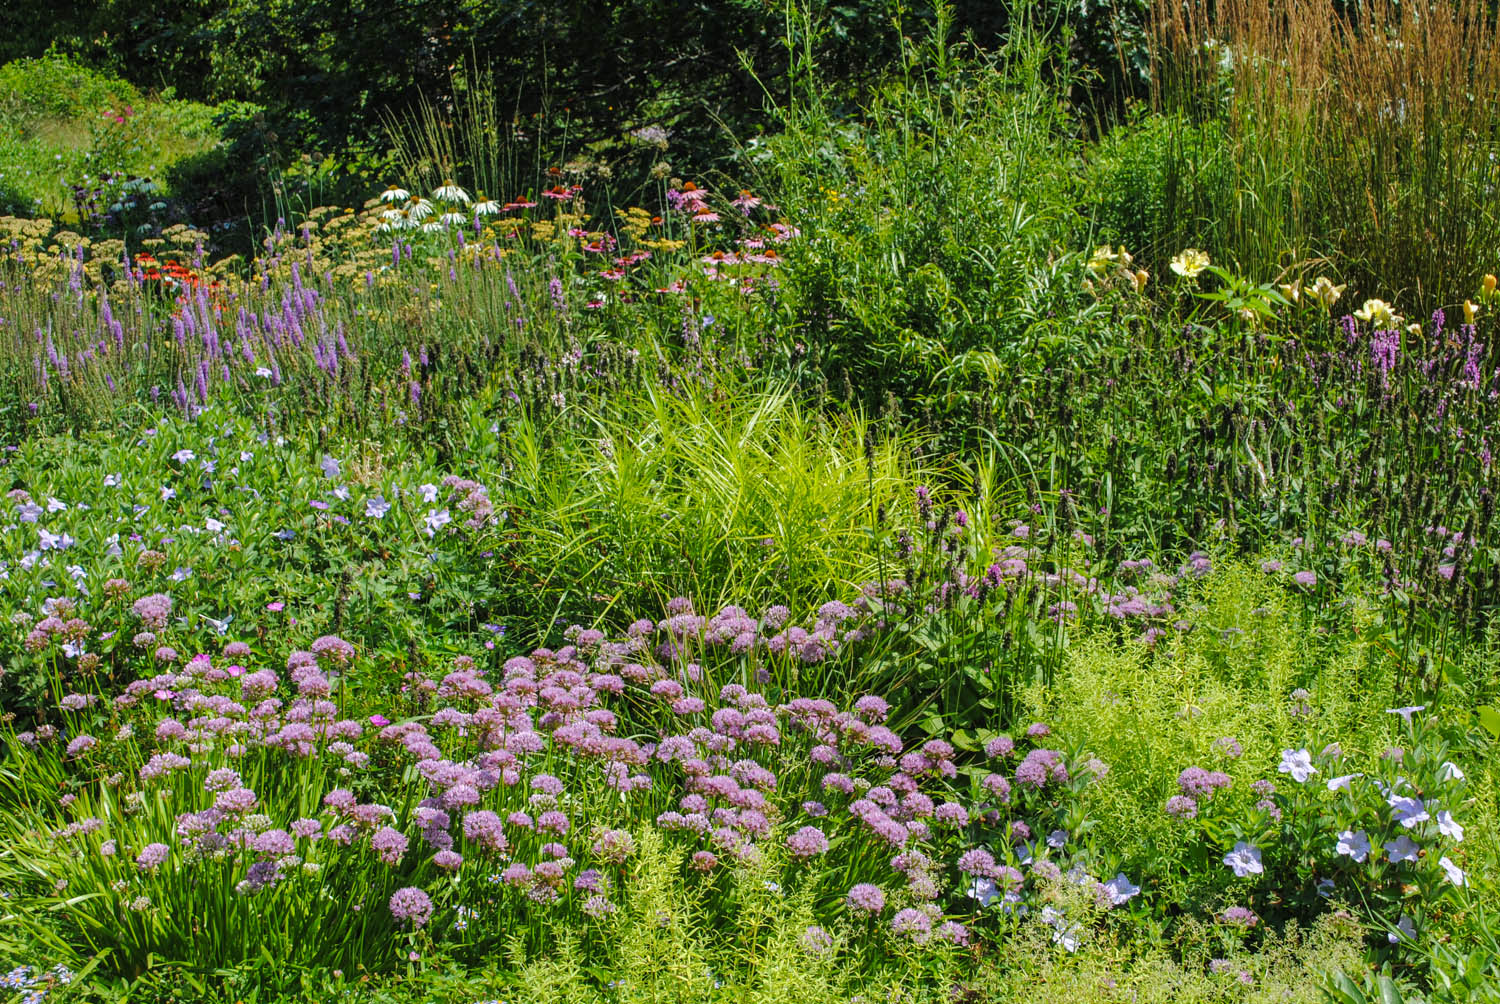 A vivid example of Roy's approach to planting perennials. Color erupts from the green matrix below.